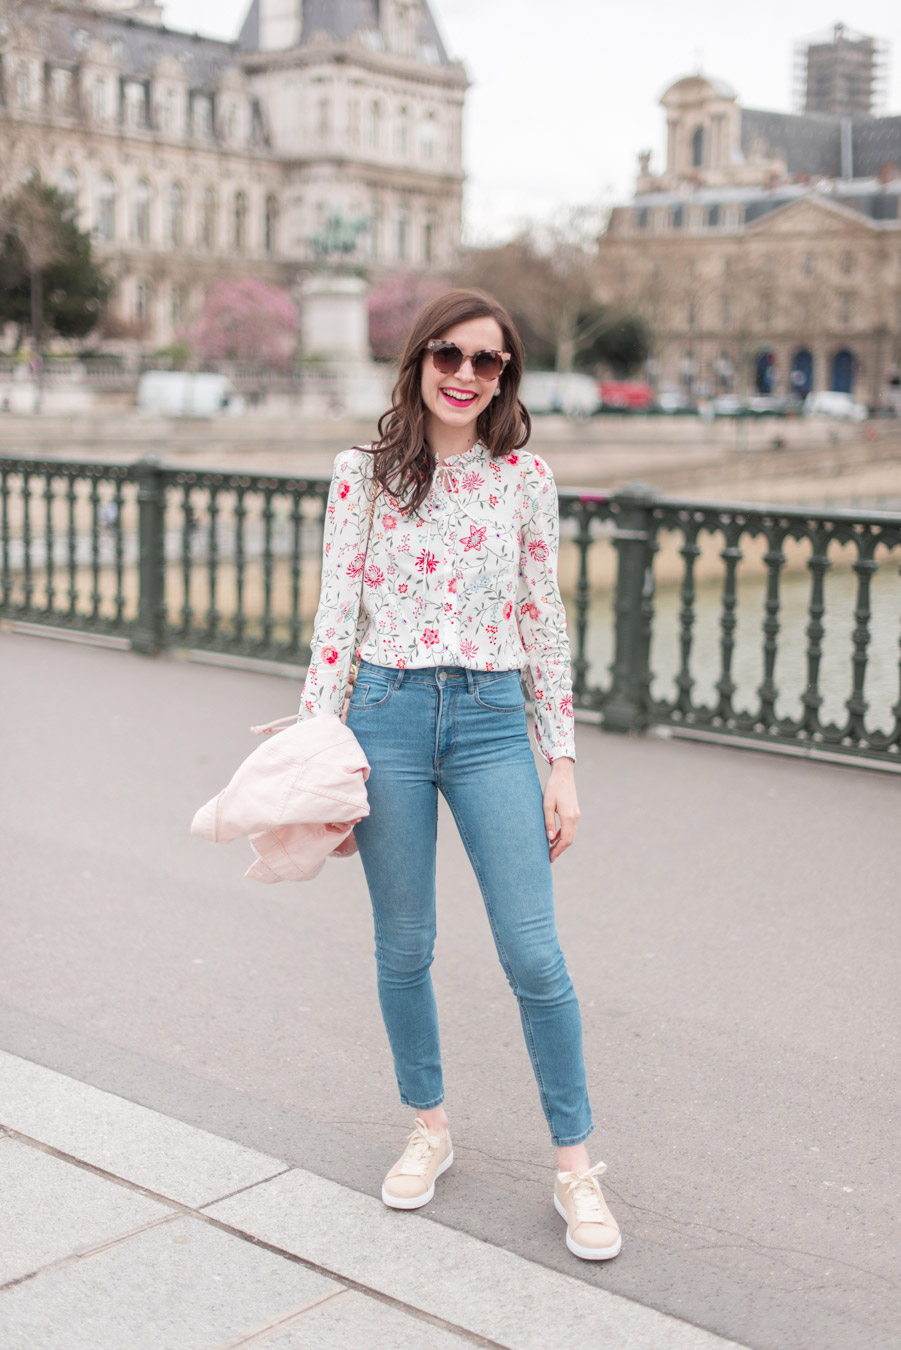 Blog-Mode-And-The-City-Looks-La-veste-en-jean-rose-parfaite-6